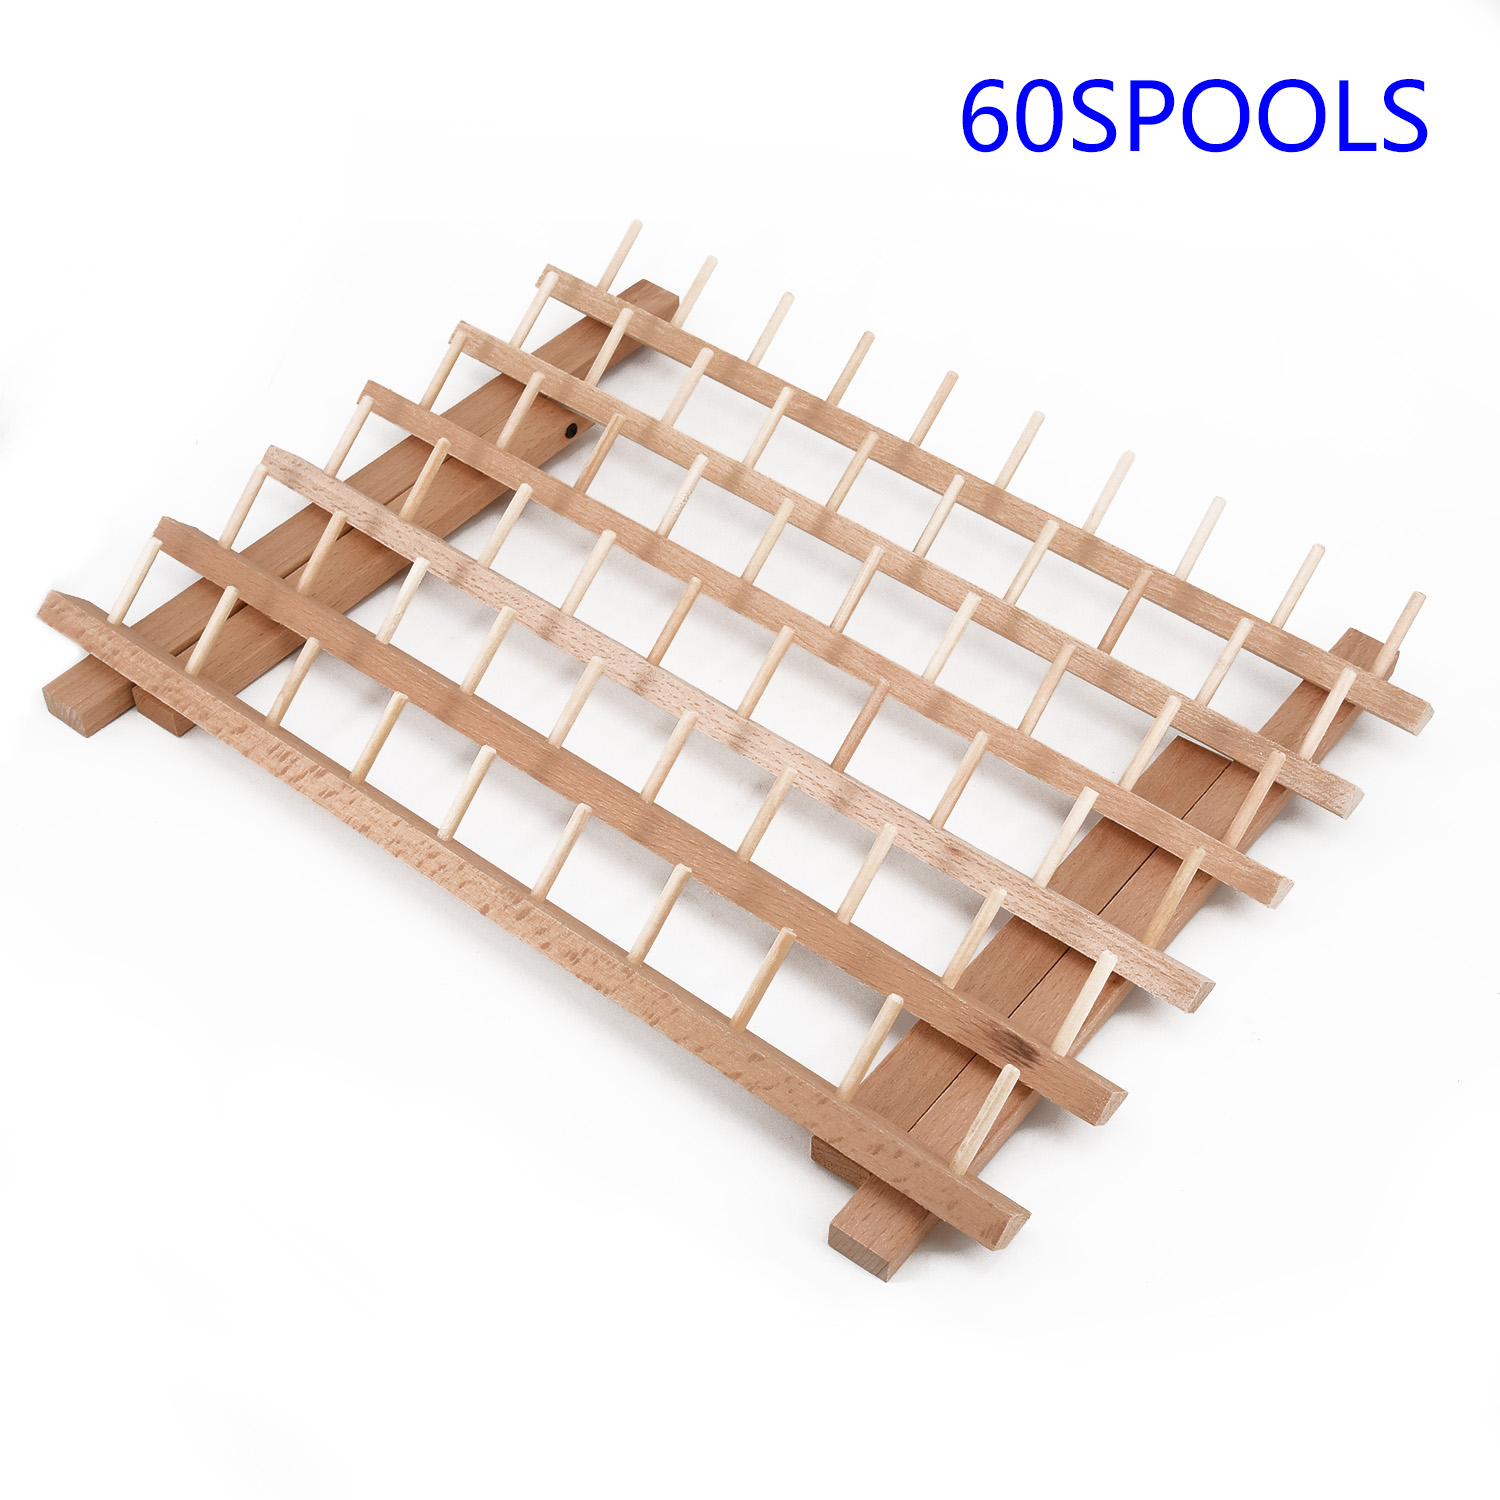 Stand Spools Rack Organizer Craft 12 60 120 Spools Tailor Cone Arranger Holder Wood Sewing Embroidery